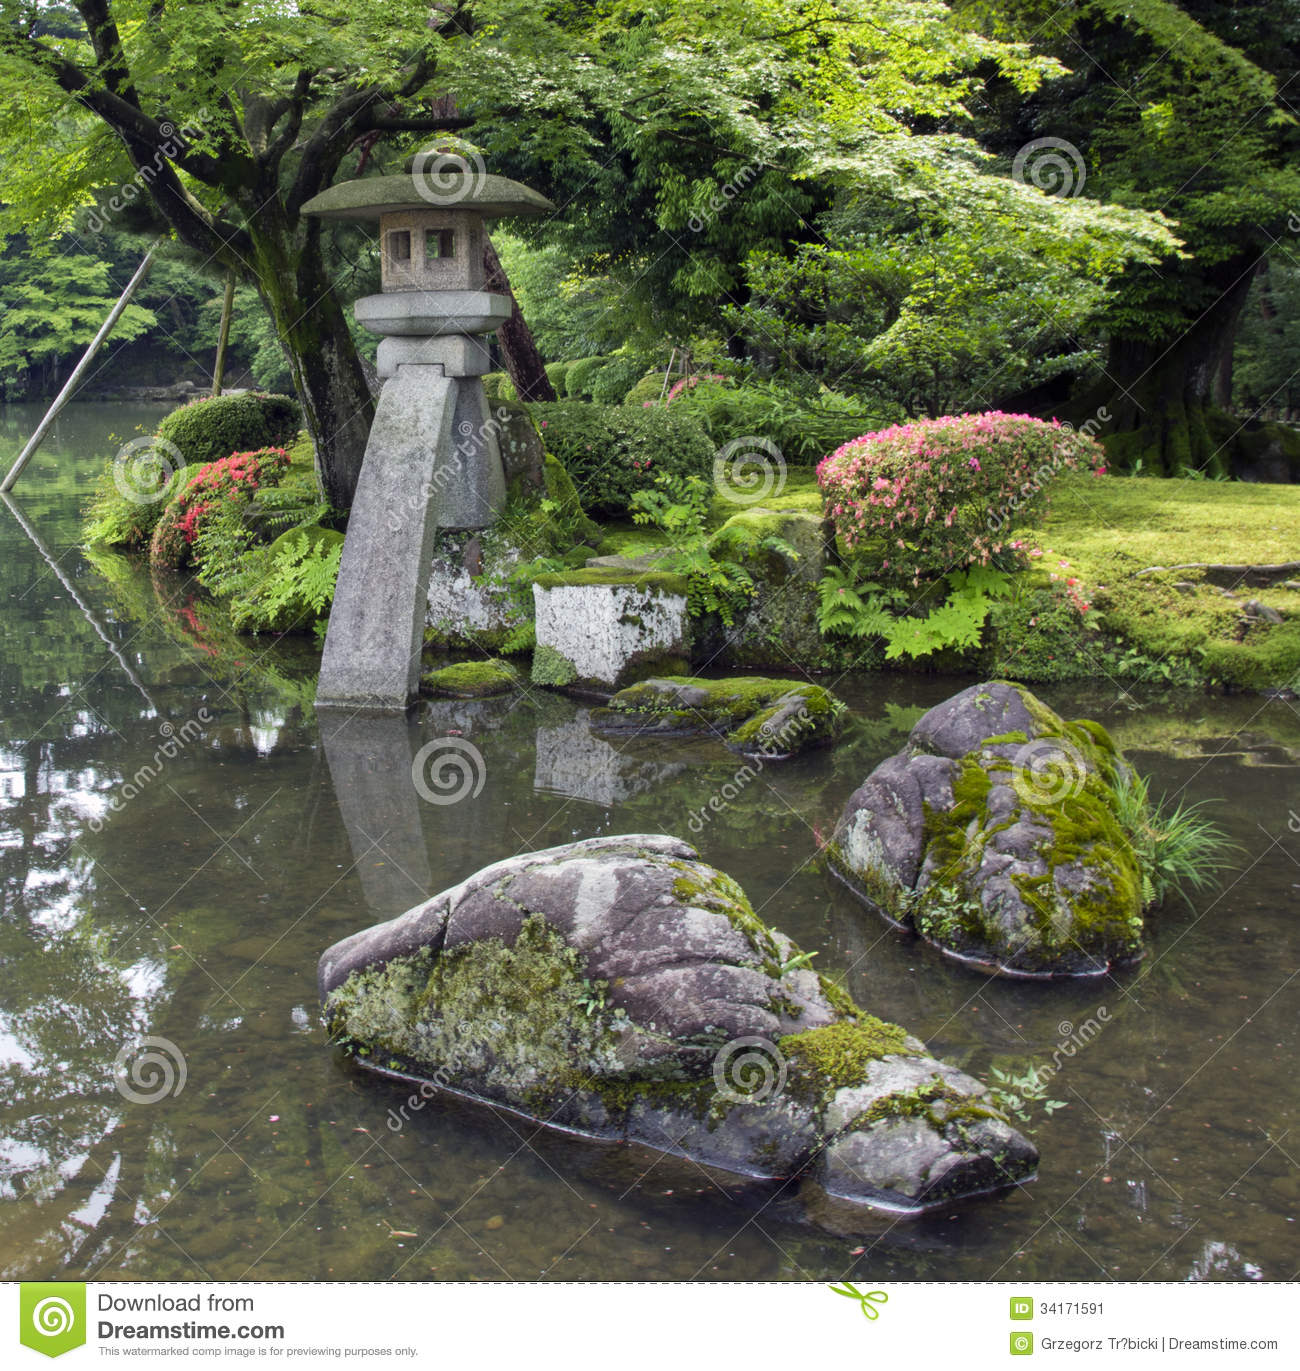 Japanese Garden Stones Fabulous japanese garden stone lanterns workwithnaturefo fragment of japanese garden with stone lantern and big rocks covered fragment of japanese garden with workwithnaturefo